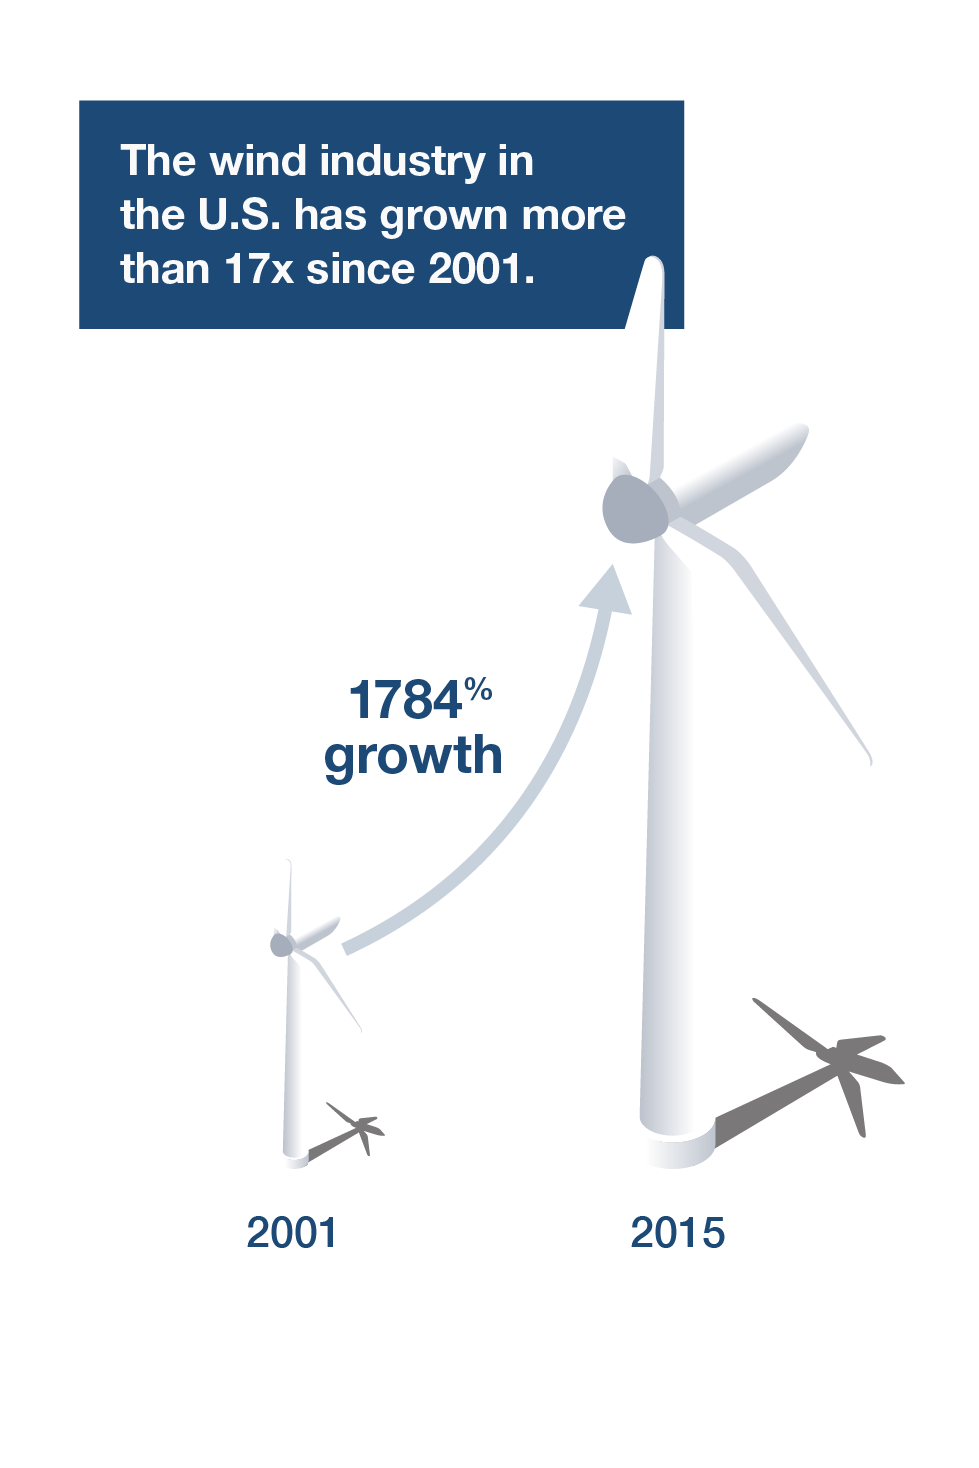 Wind is a limitless, free, and non-polluting renewable energy resource that consumes virtually no water. At Invenergy, we're harvesting more of it than any other independent producer in North America.